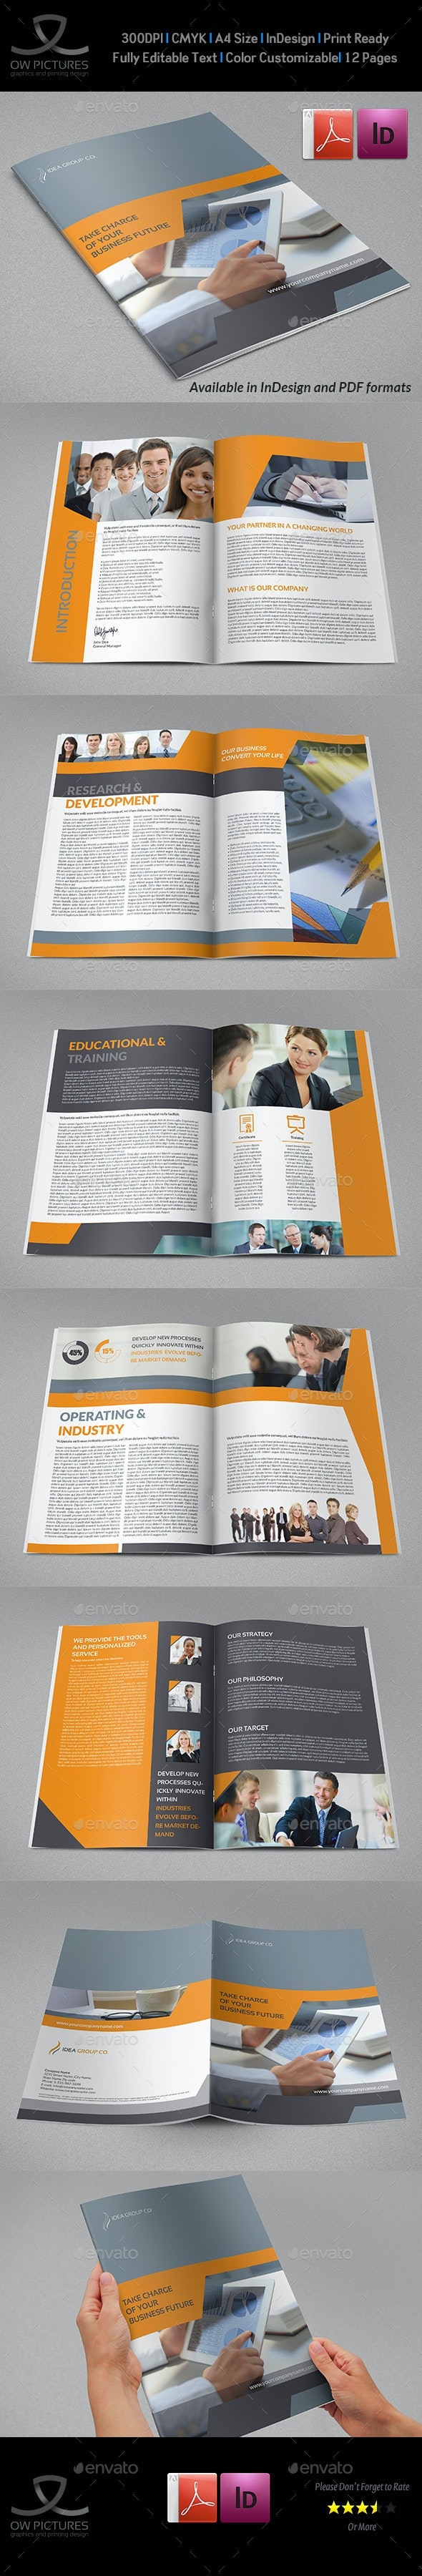 Corporate Brochure Template Vol.39 -12 Pages - Corporate Brochures